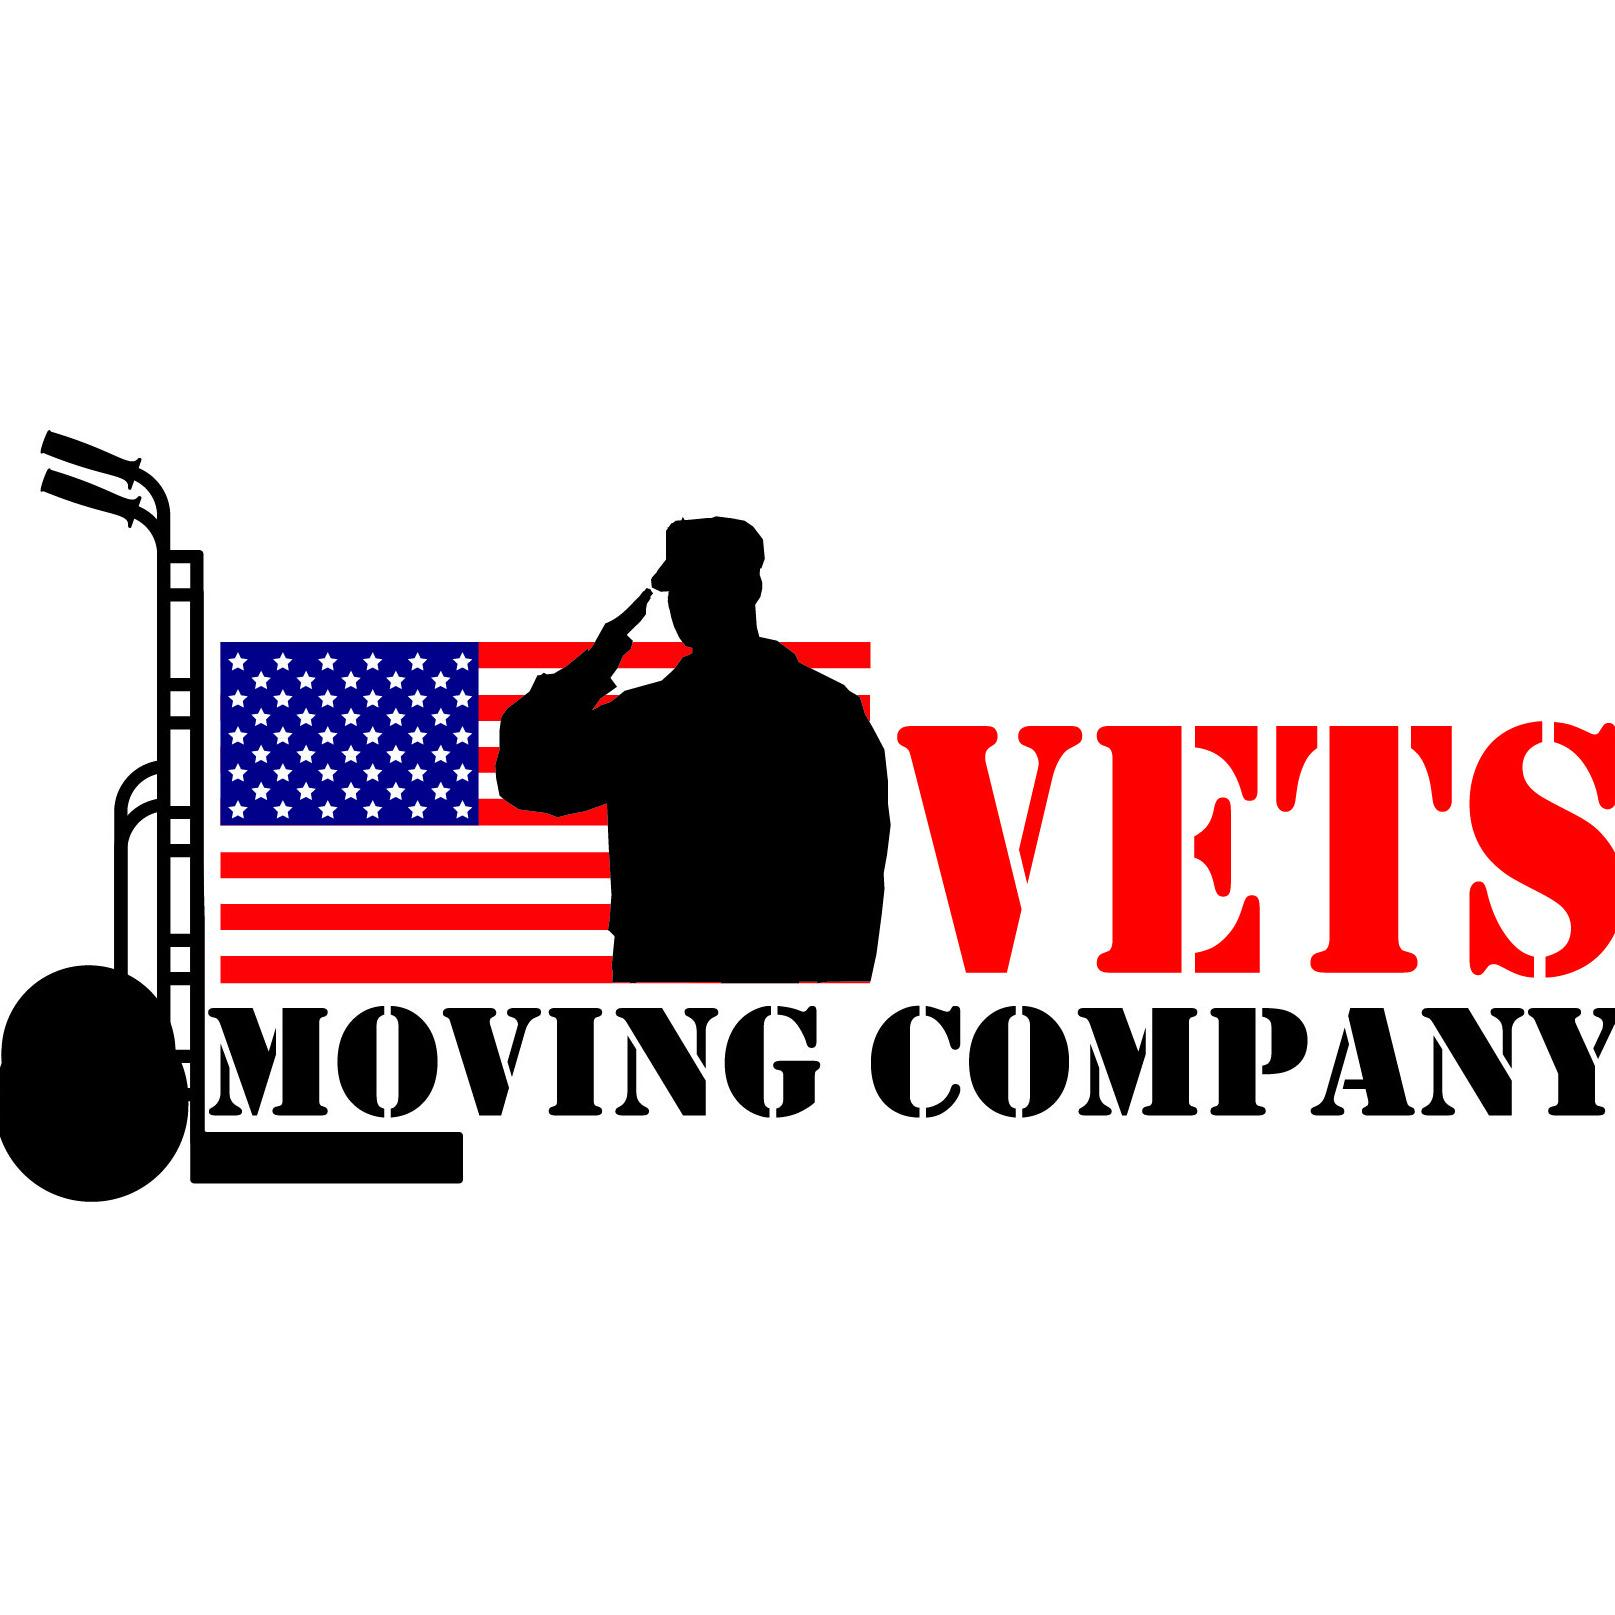 Vets Moving Company